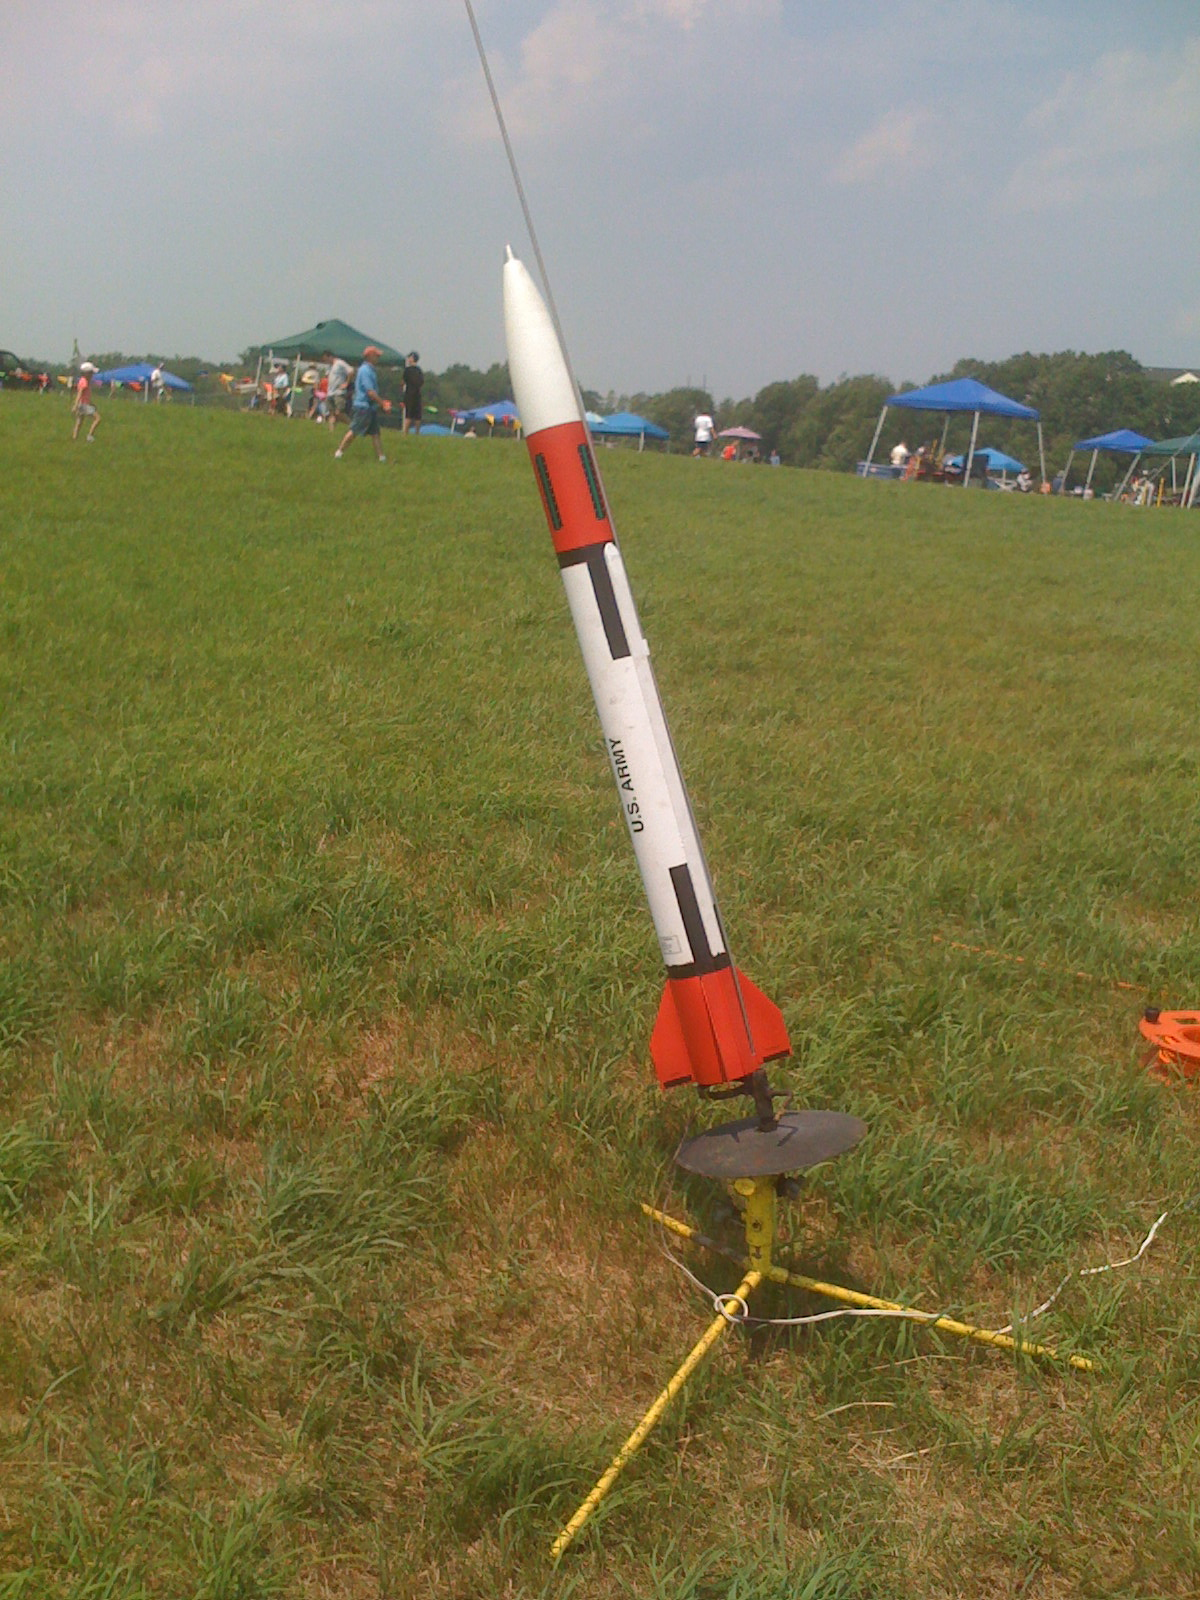 This is the only rocket NASA can afford.